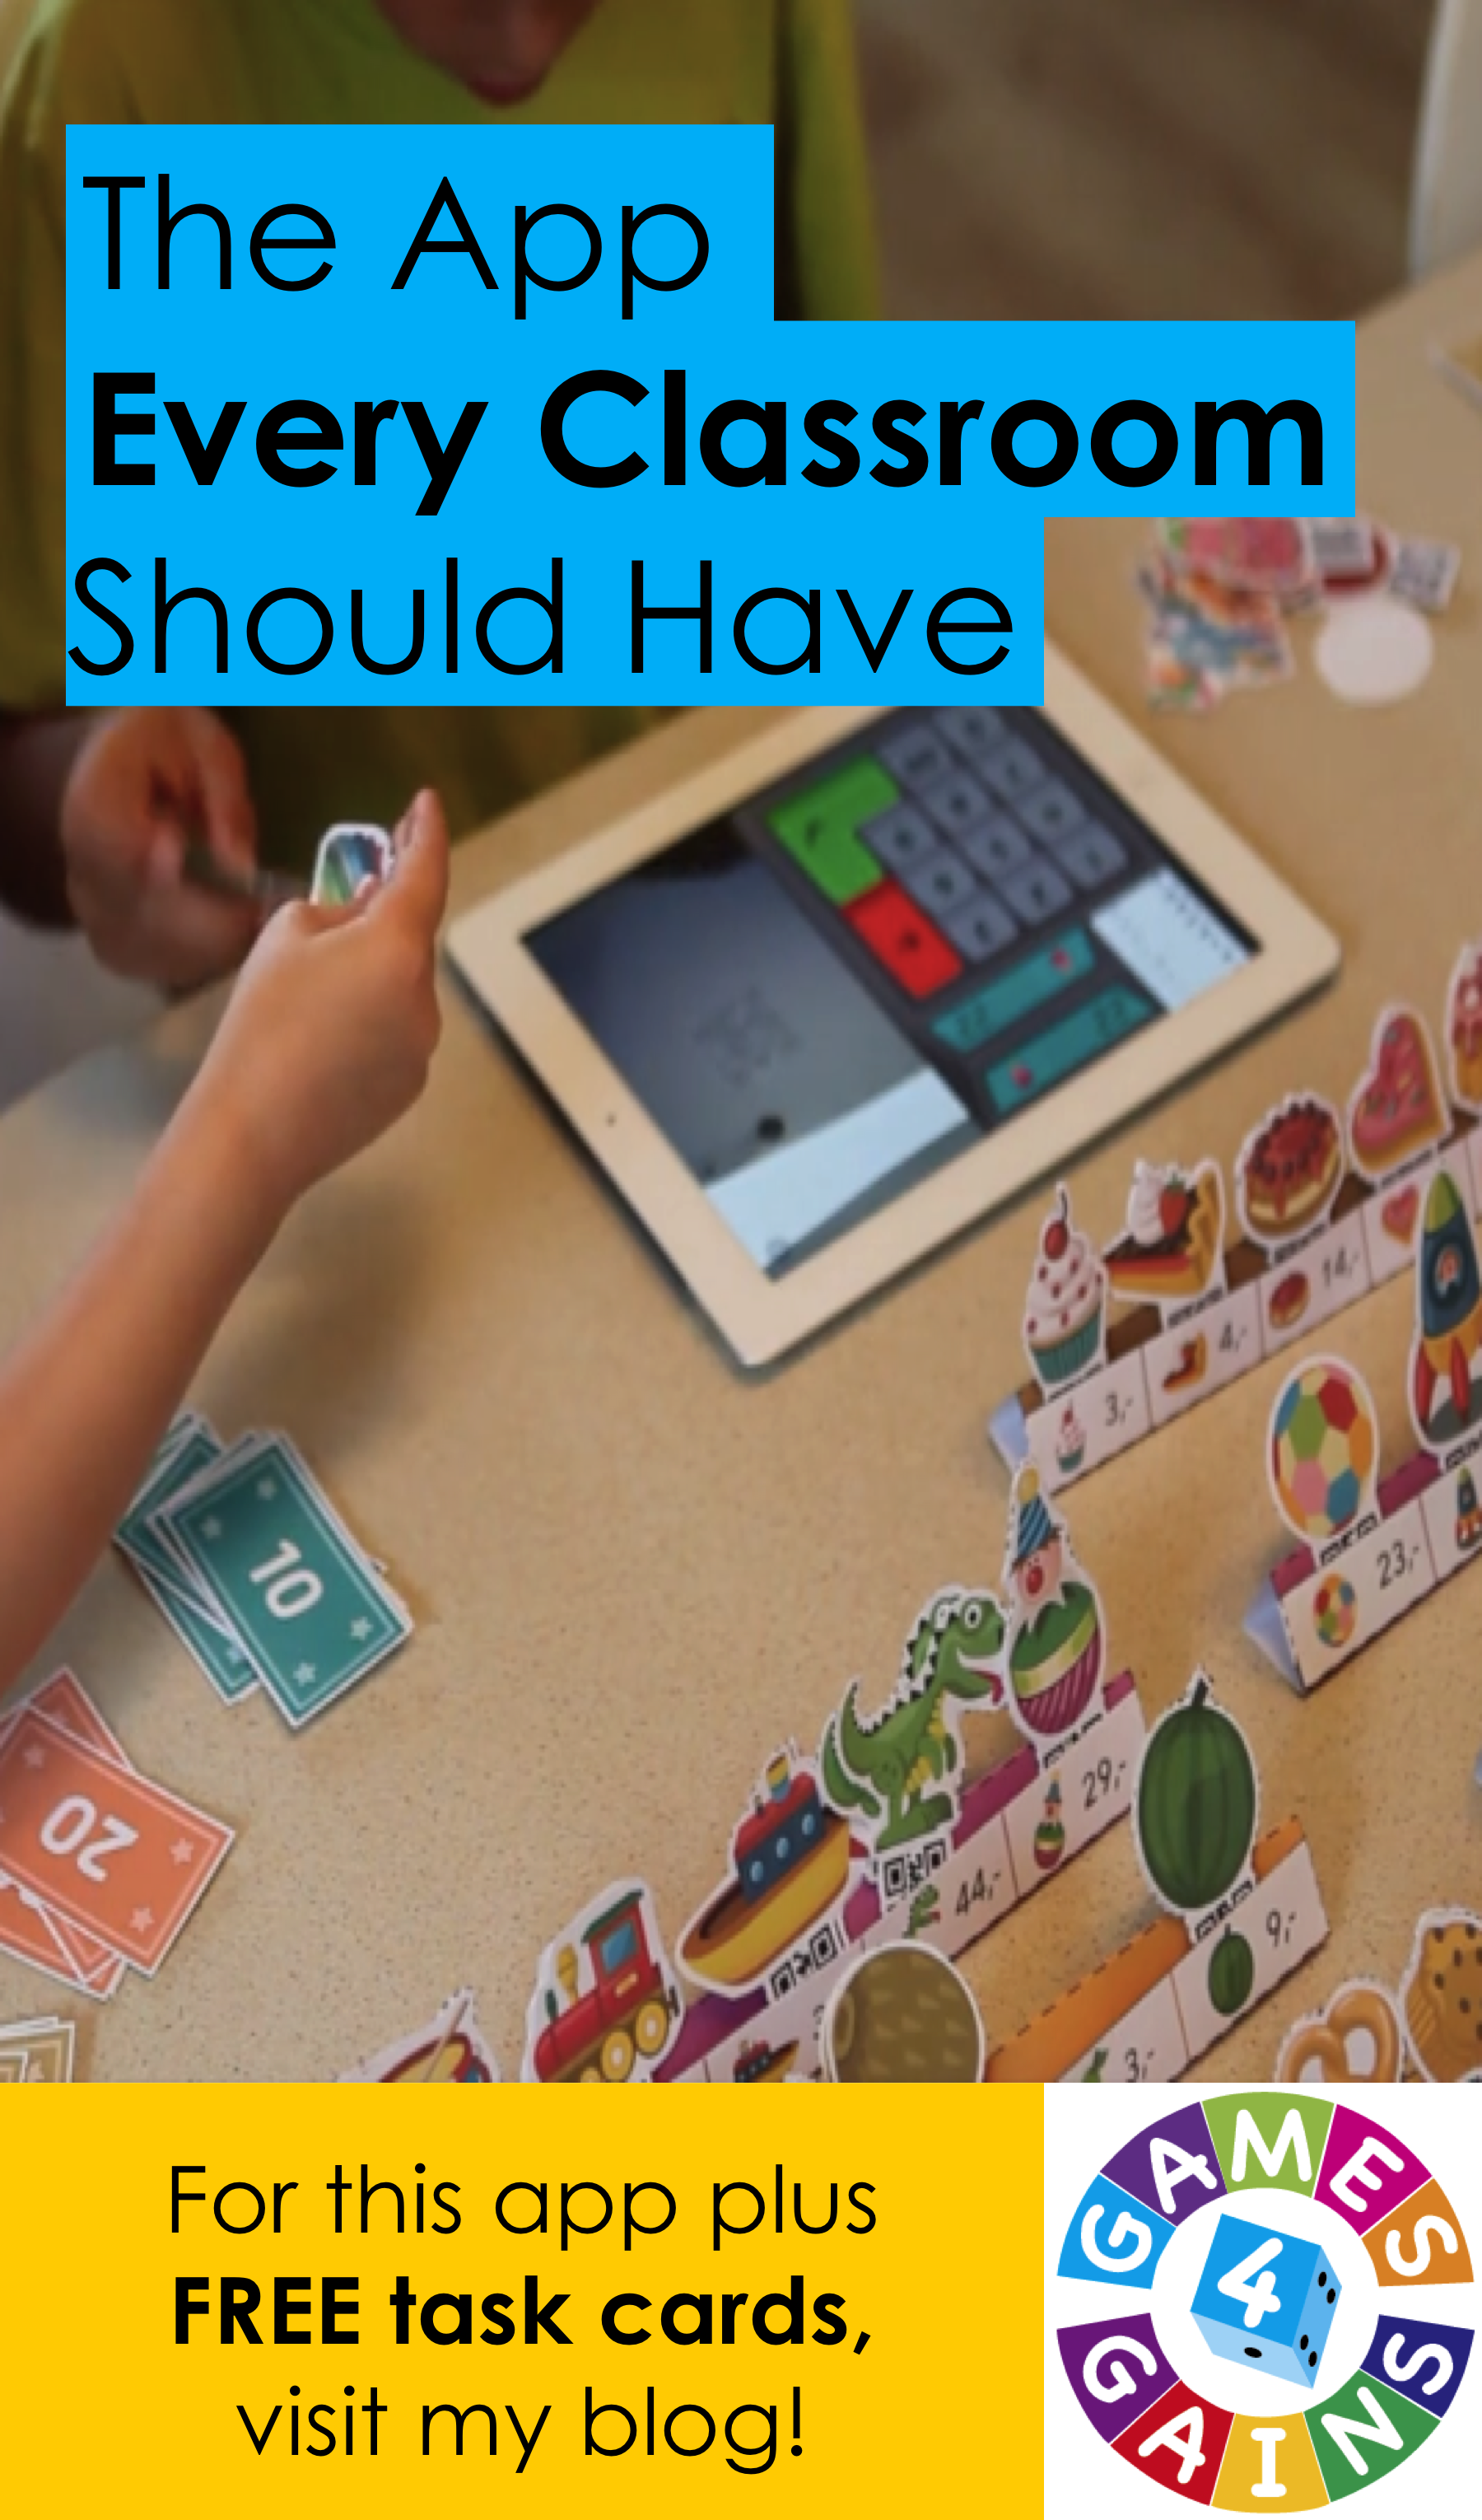 The App Every Classroom Should Have! Fun classroom